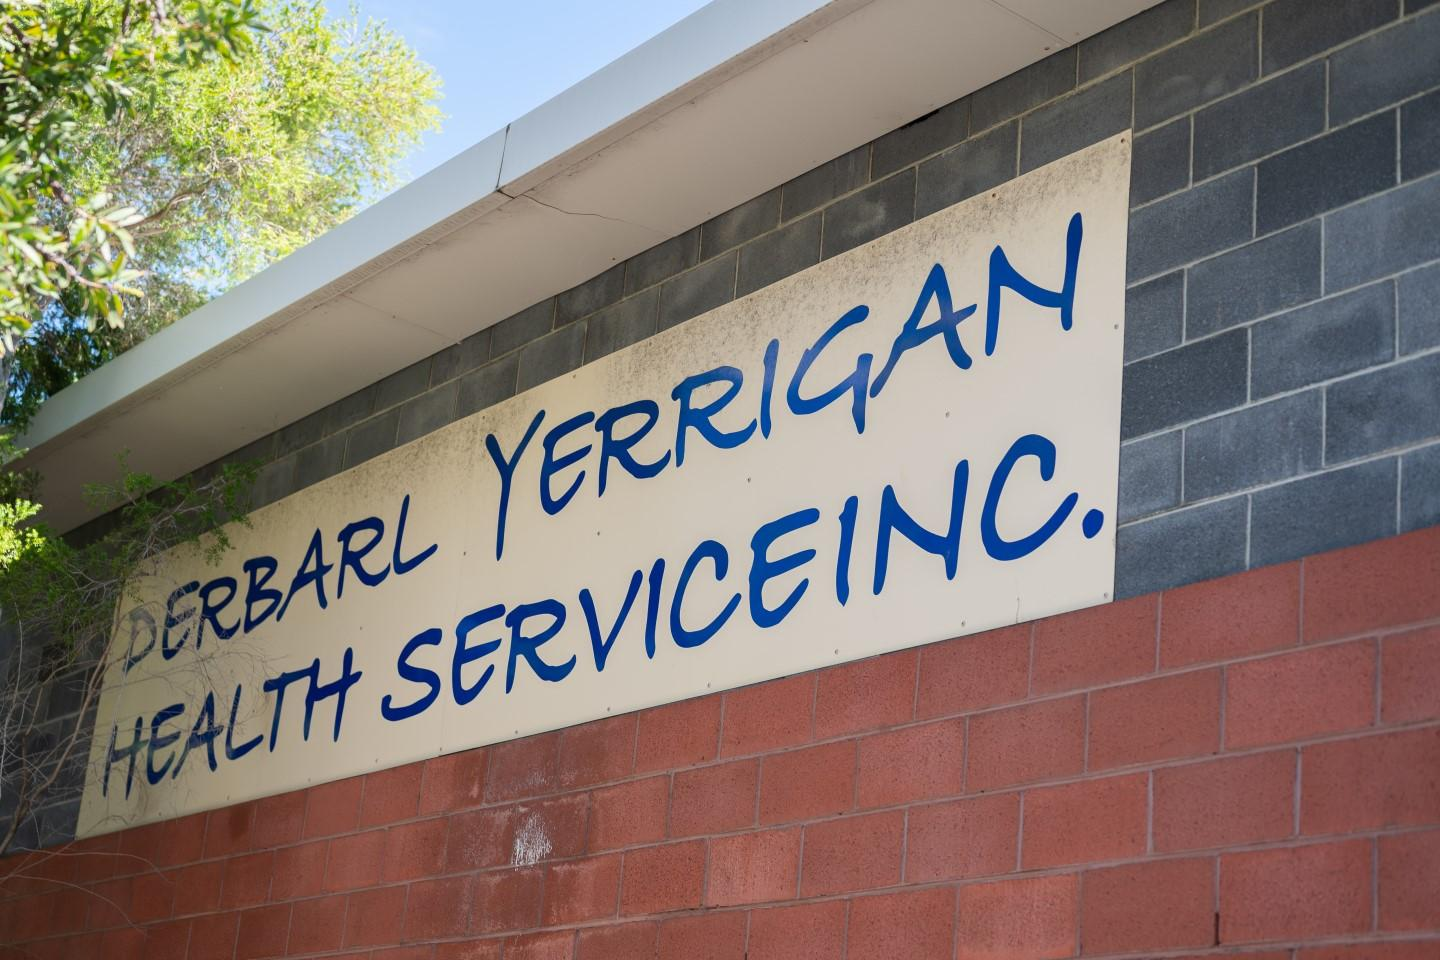 Derbarl Yerrigan out of administration